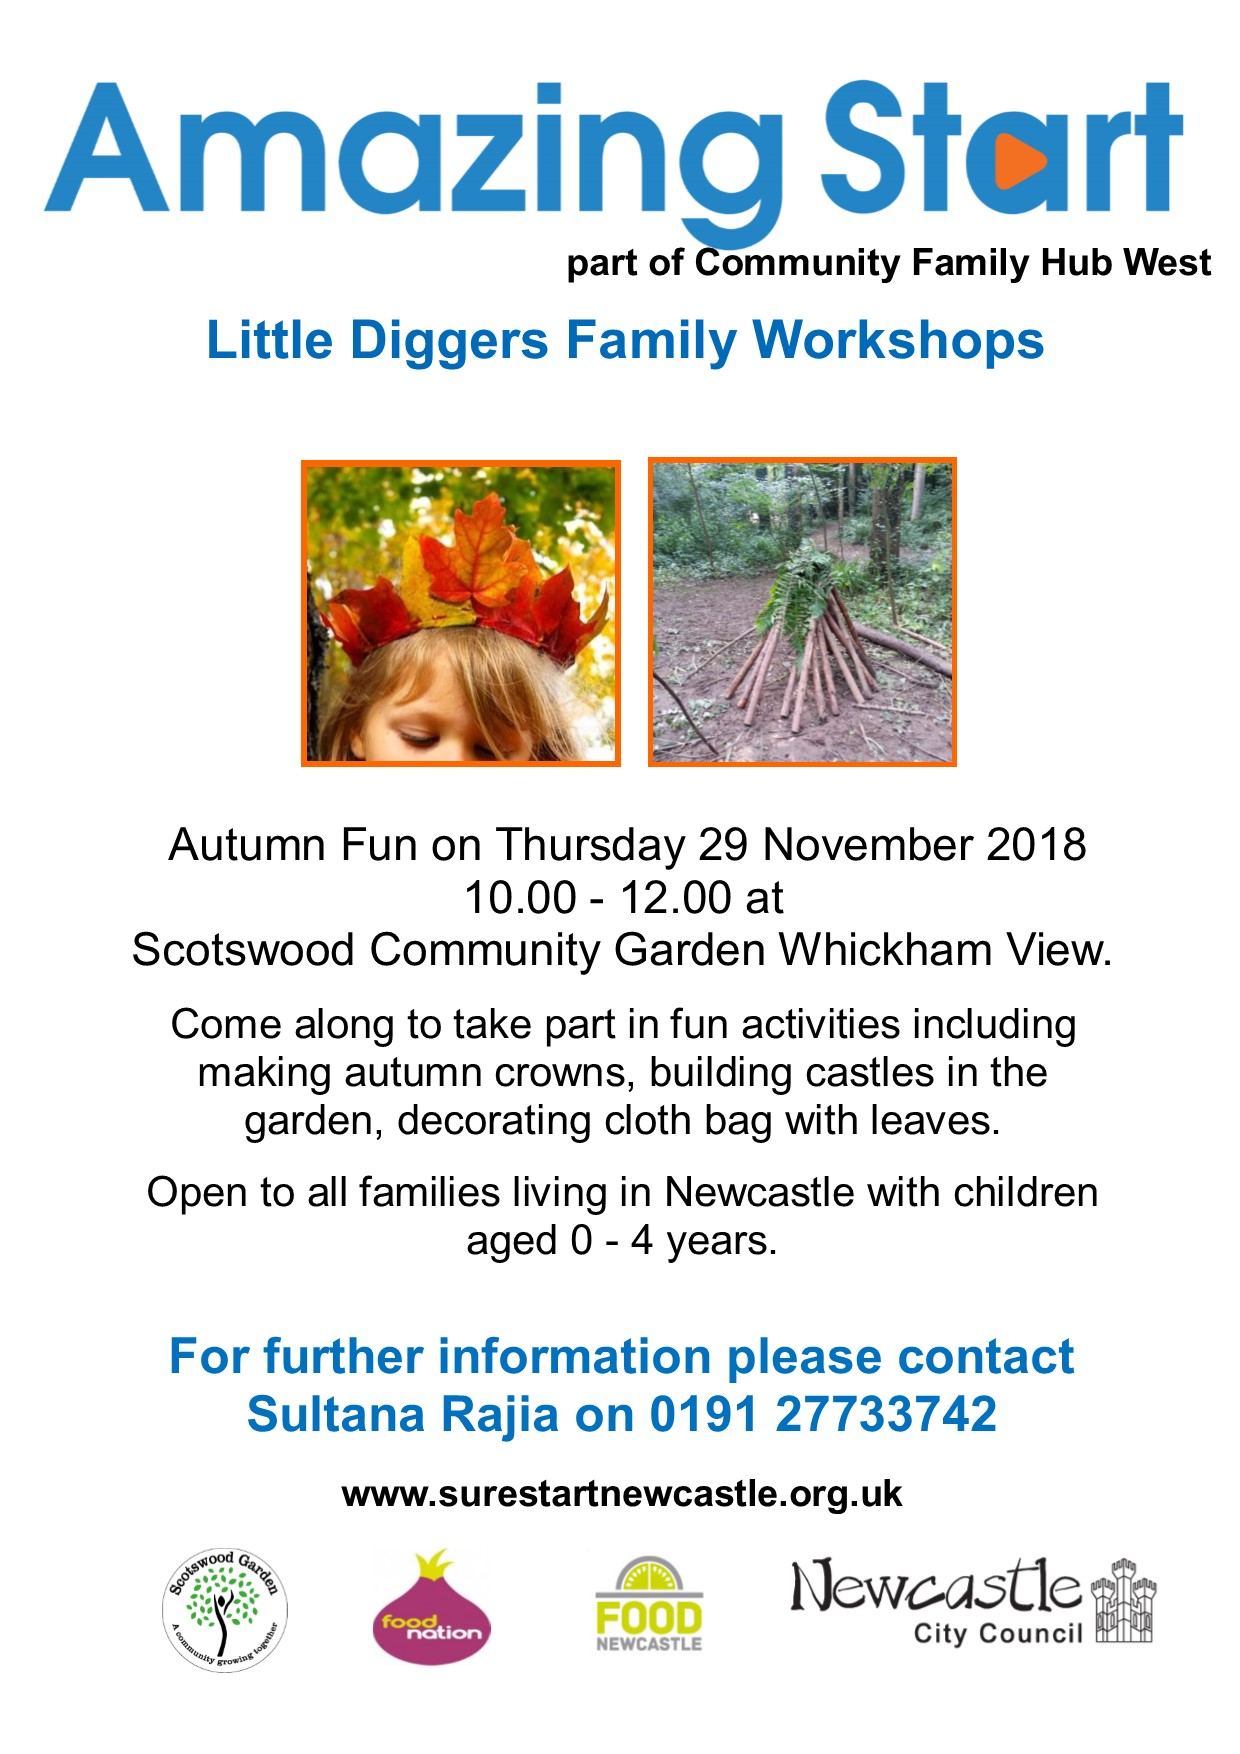 Little Diggers 29 November 2018 1